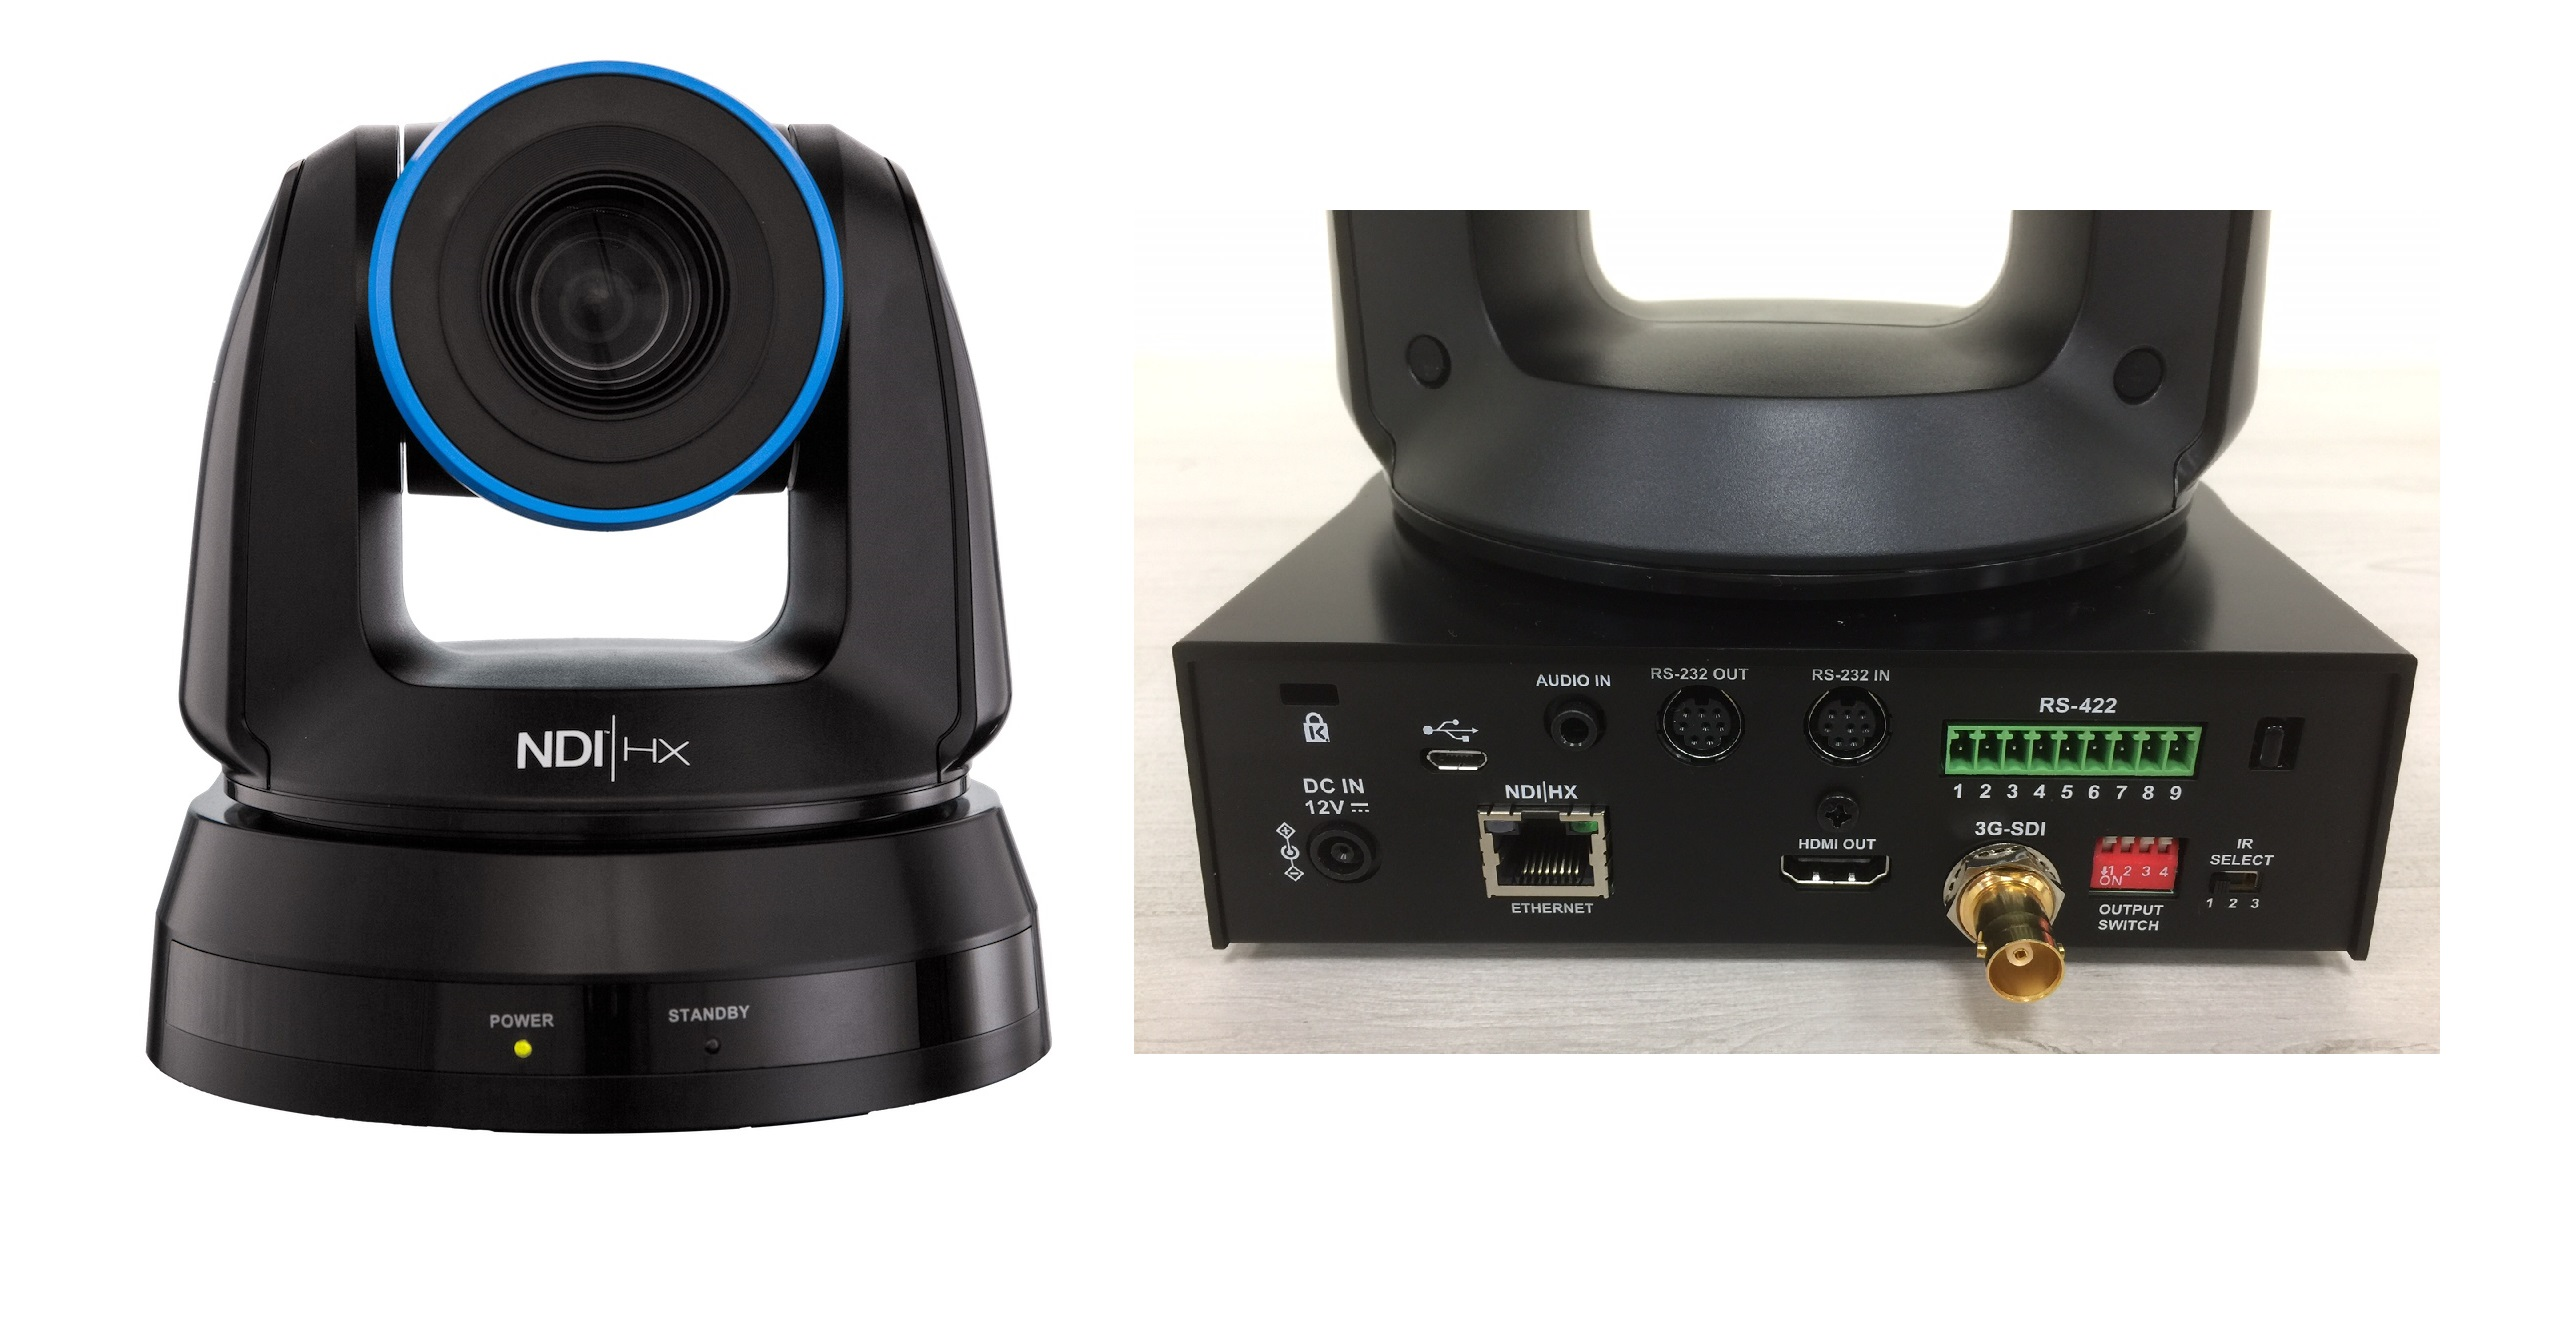 NewTek Completes the Transition to IP Video with NDI